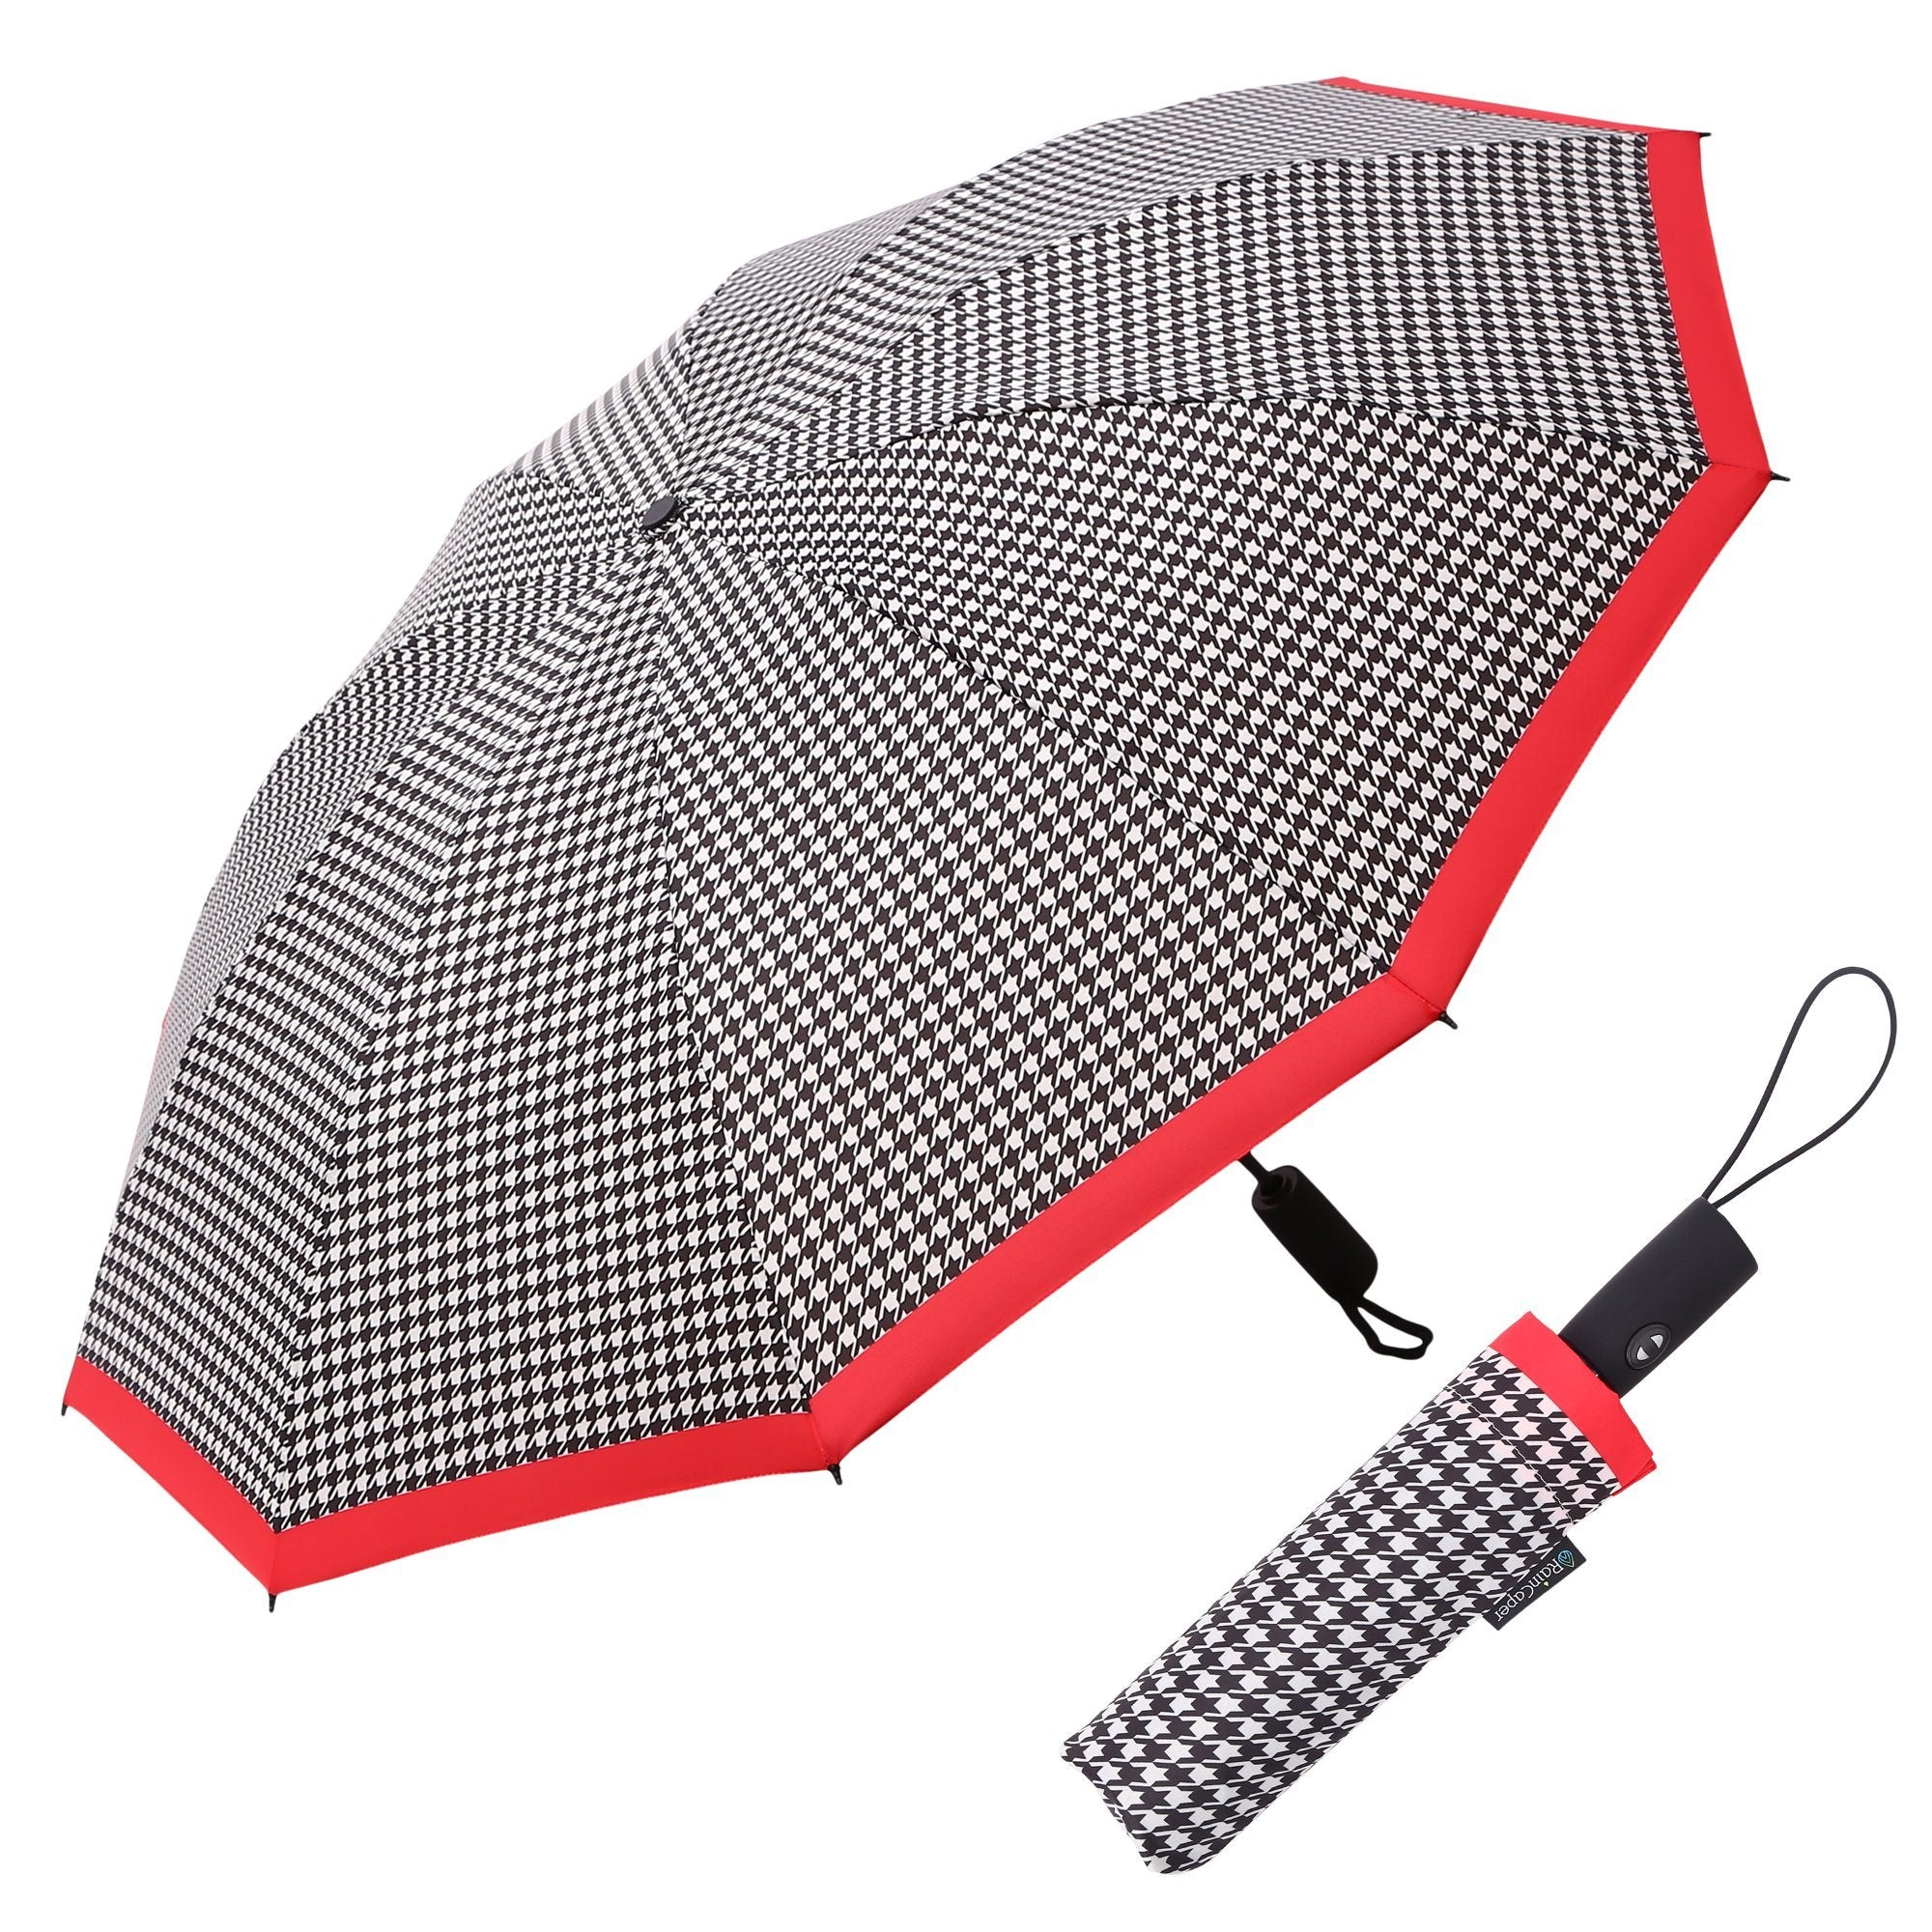 Image of a RainCaper Crimson/Black & White Houndstooth folded traveling umbrella shown both open and closed